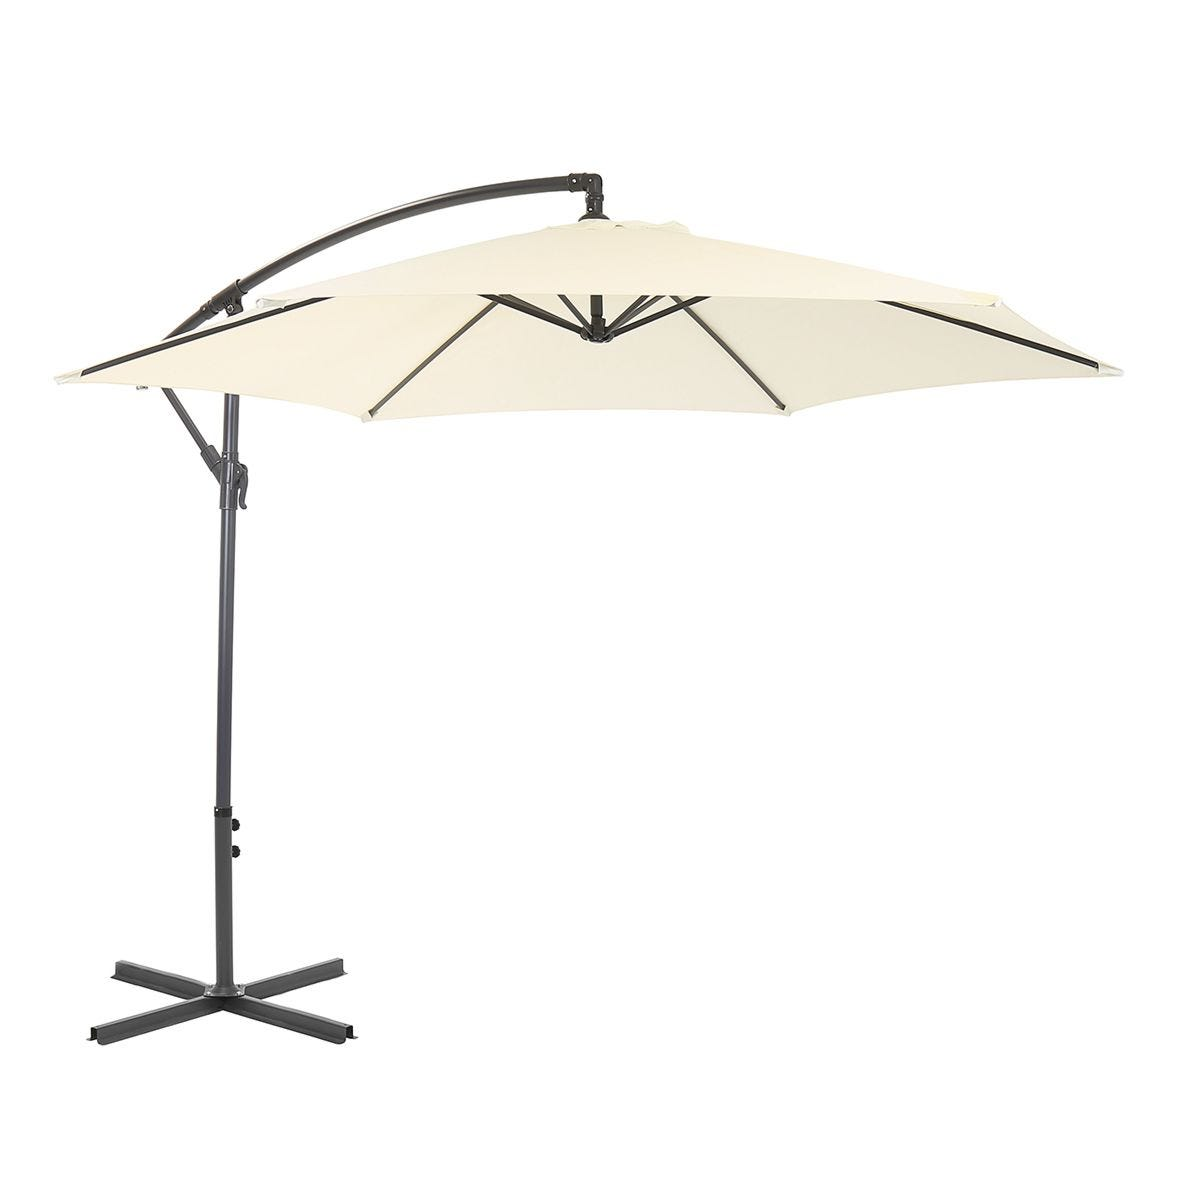 Charles Bentley 3m Hanging Parasol (base not included) - Cream